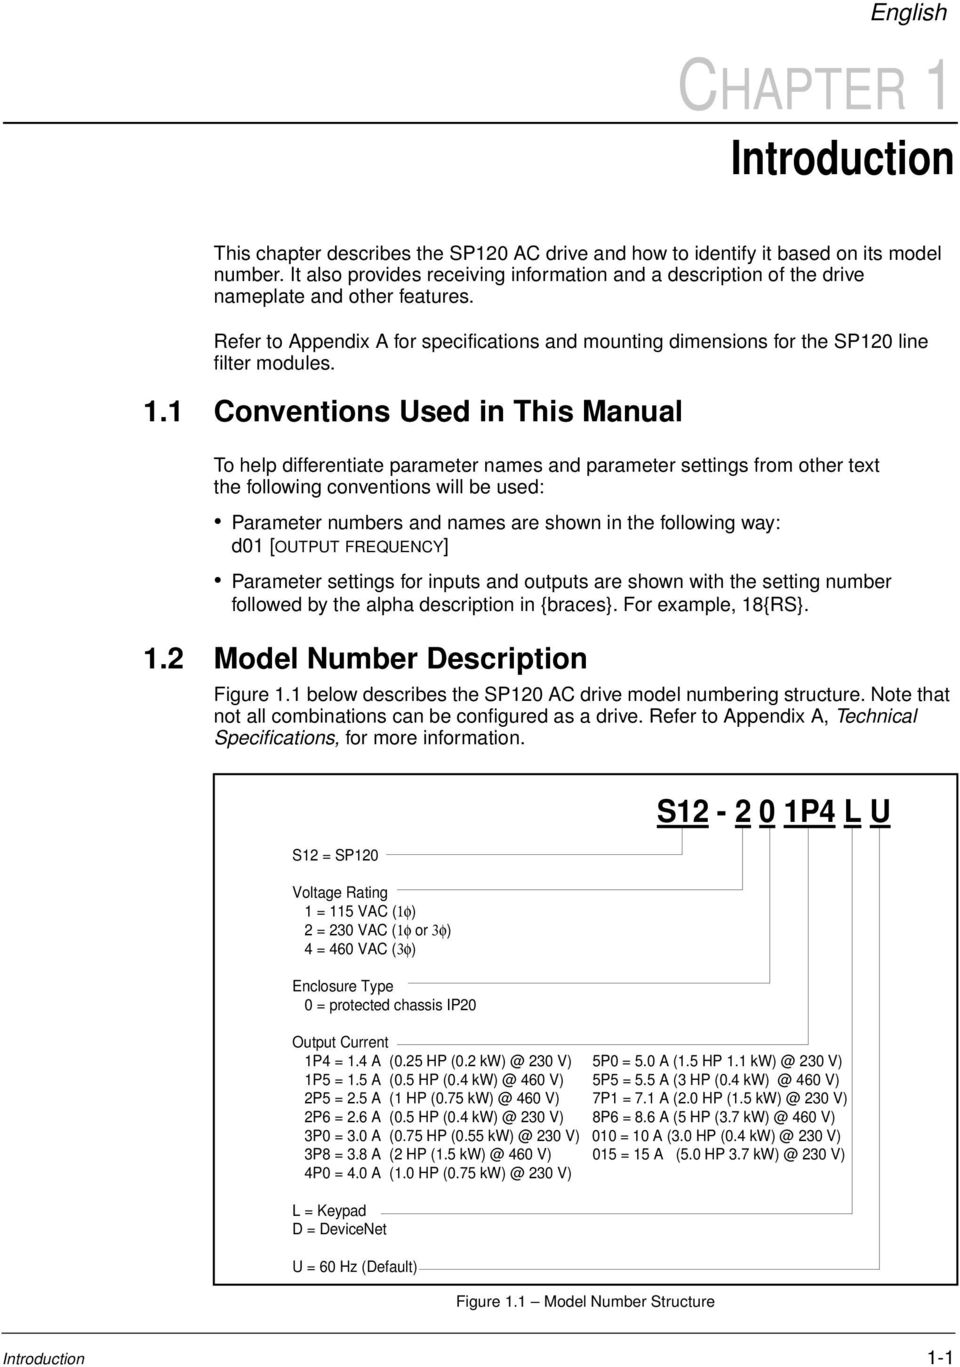 1 Conventions Used in This Manual To help differentiate parameter names and parameter settings from other text the following conventions will be used: Parameter numbers and names are shown in the